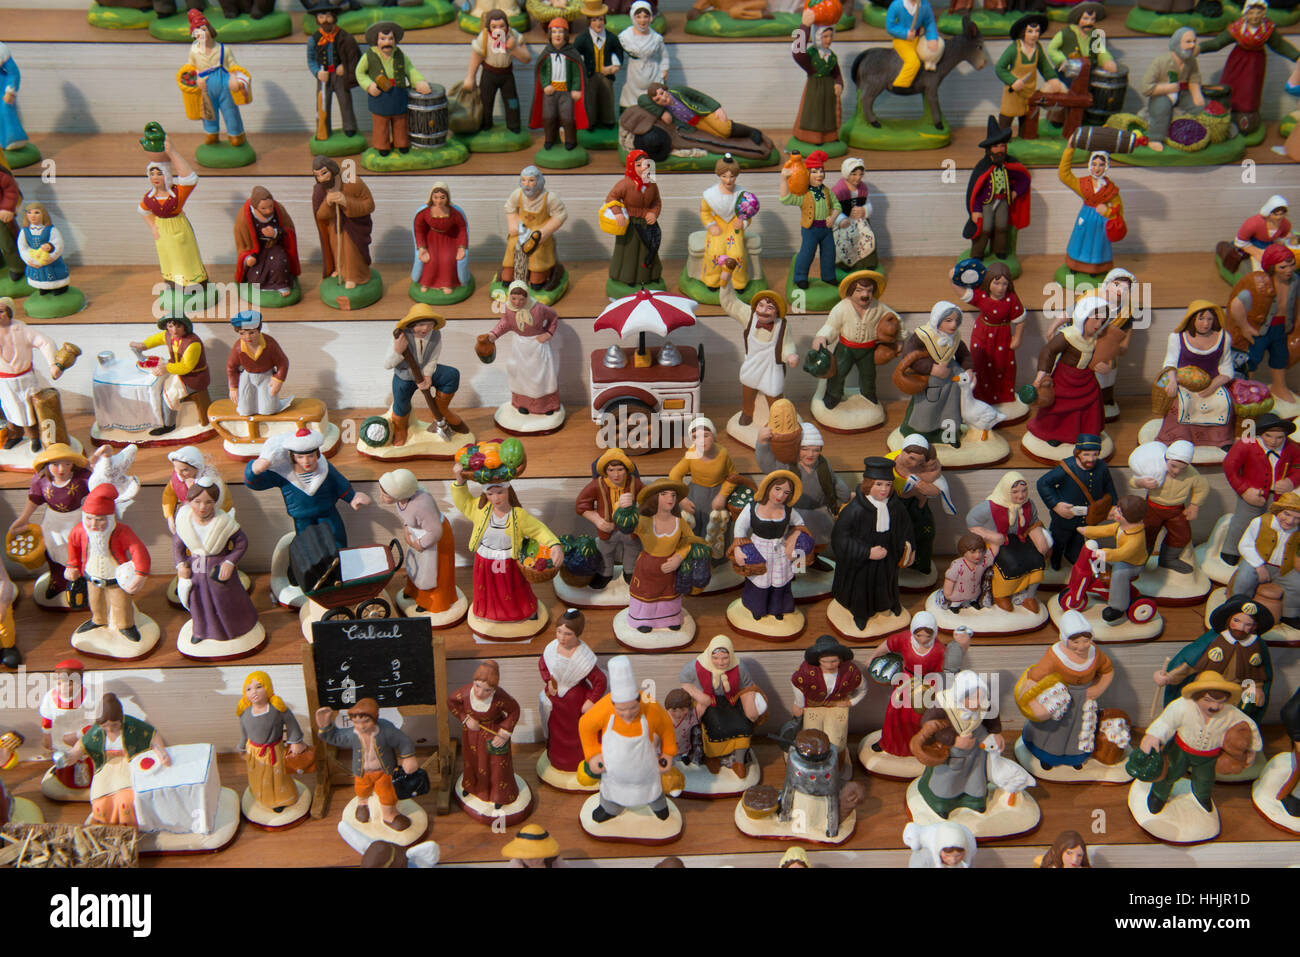 Traditional Swiss porcelain figures, Christmas Market in Montreux, Switzerland - Stock Image